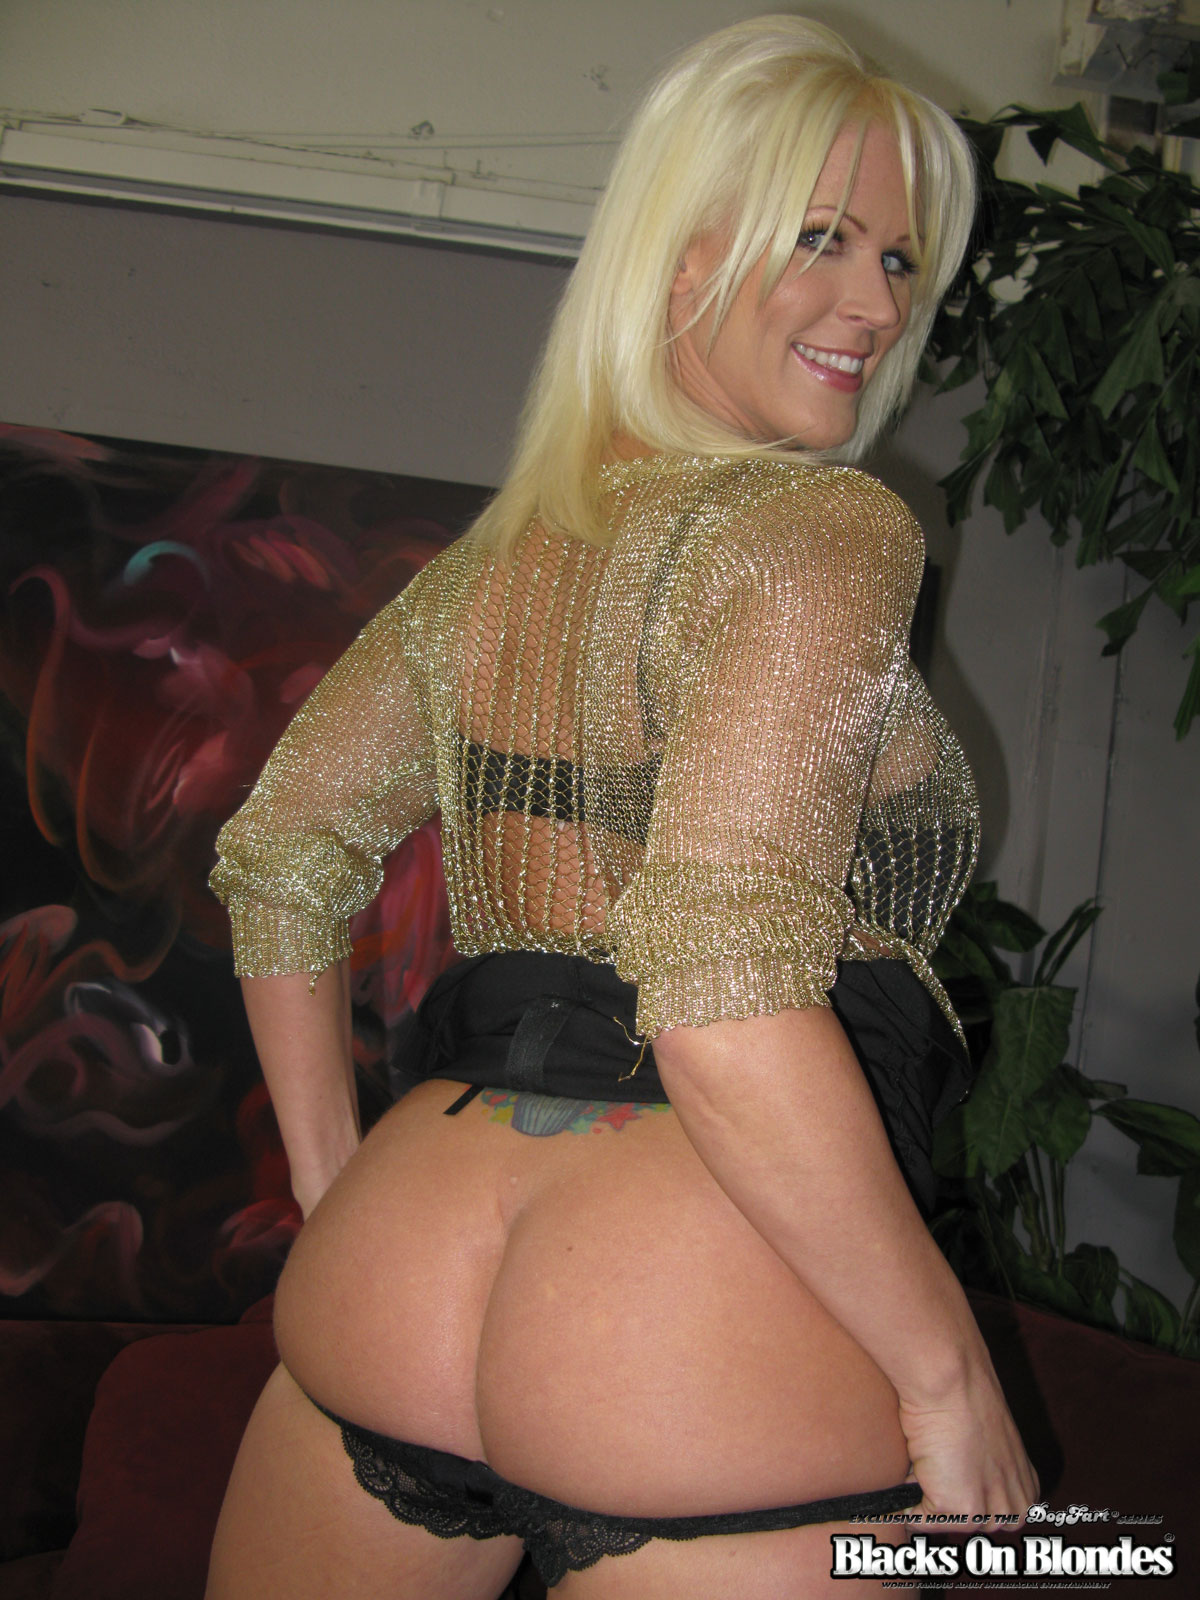 Join. All kaylee brookshire housewife your business!